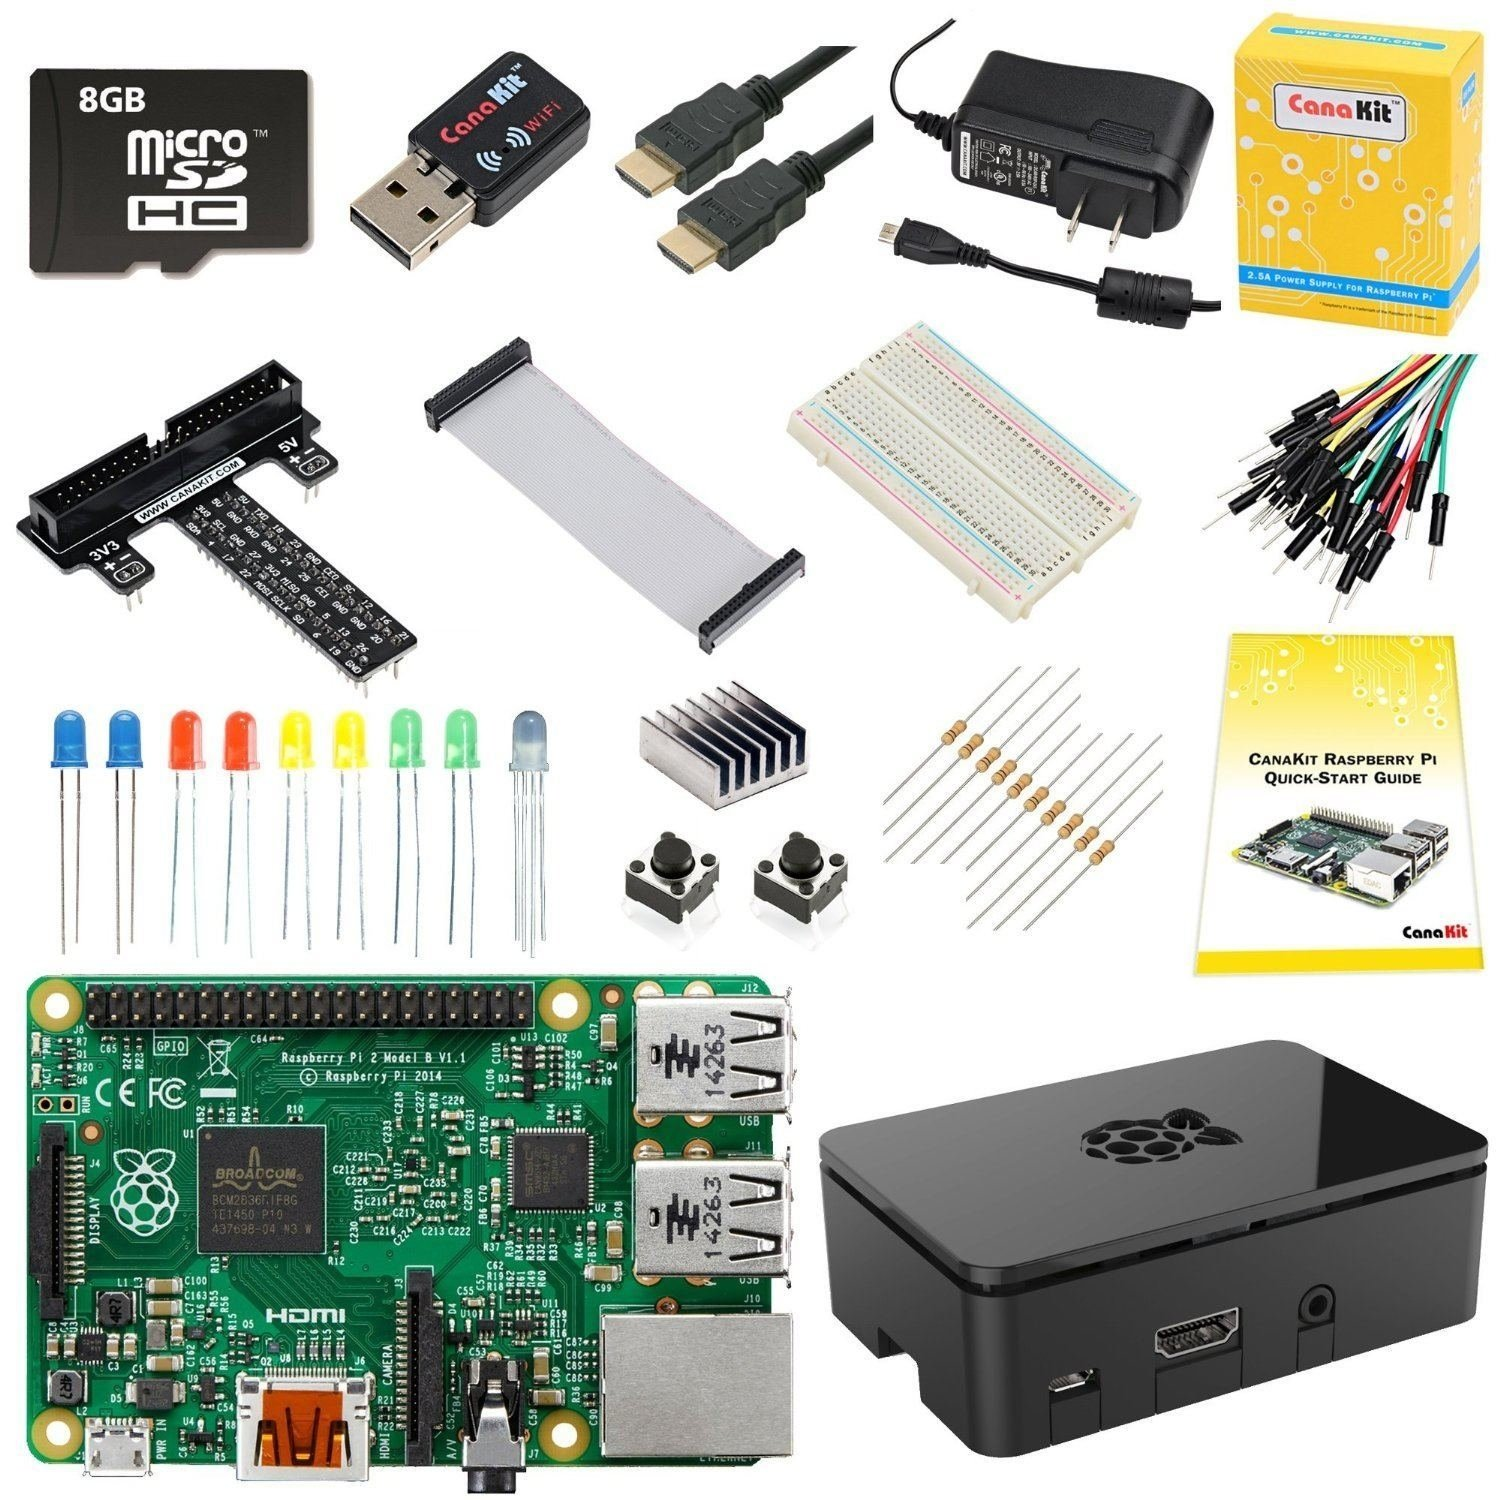 10 Beautiful Gift Ideas For Computer Geeks software developer gifts and other tech geek gifts 2015 simple